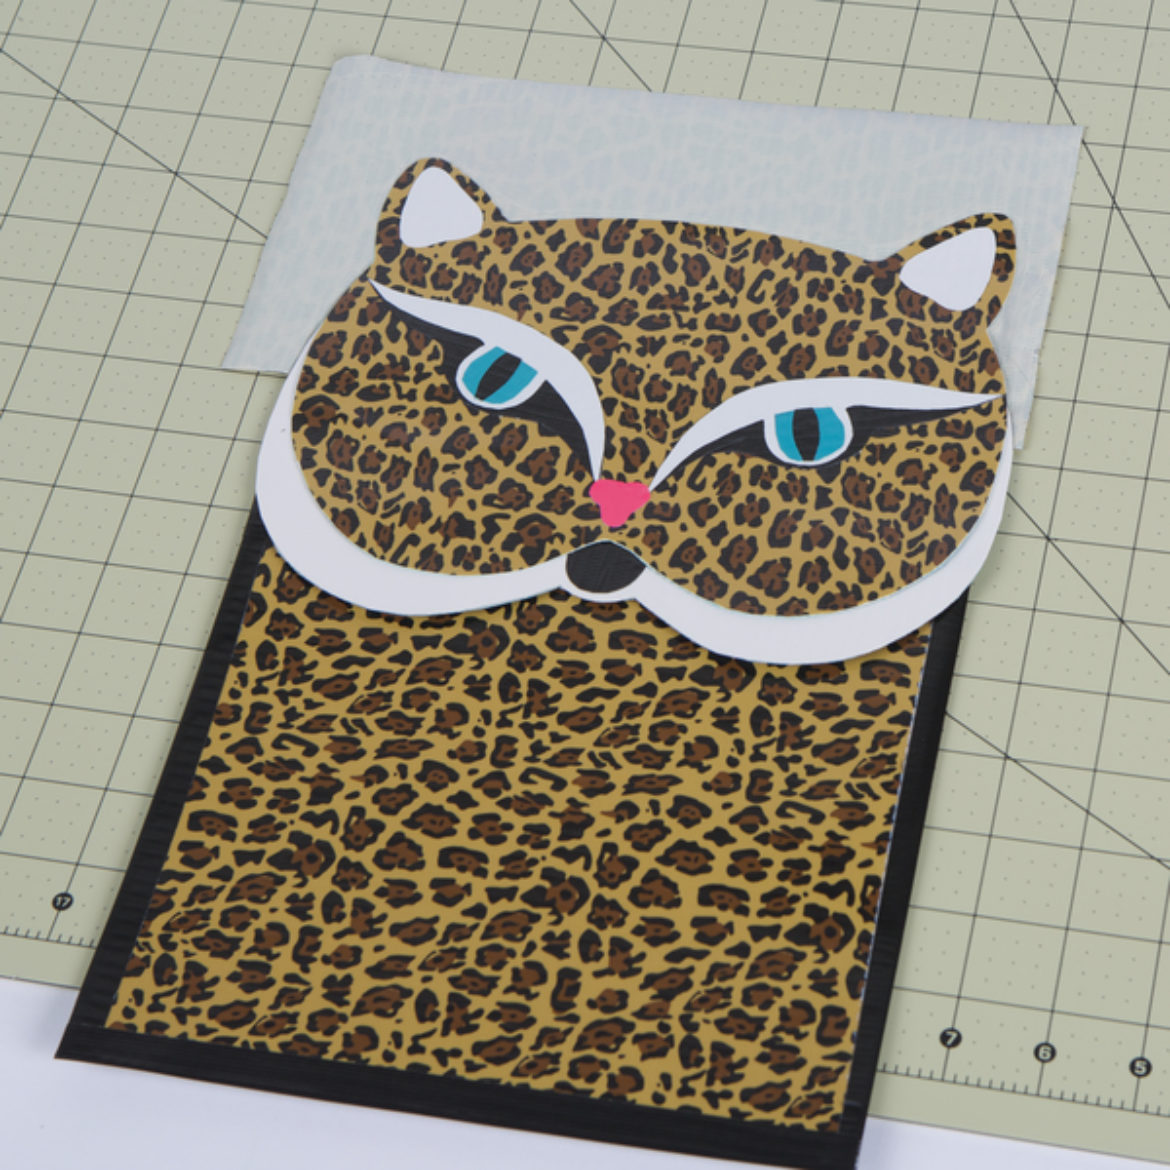 Attach the face to the larger sheet of the pouch with the sticky side that sticks out from the top of the face